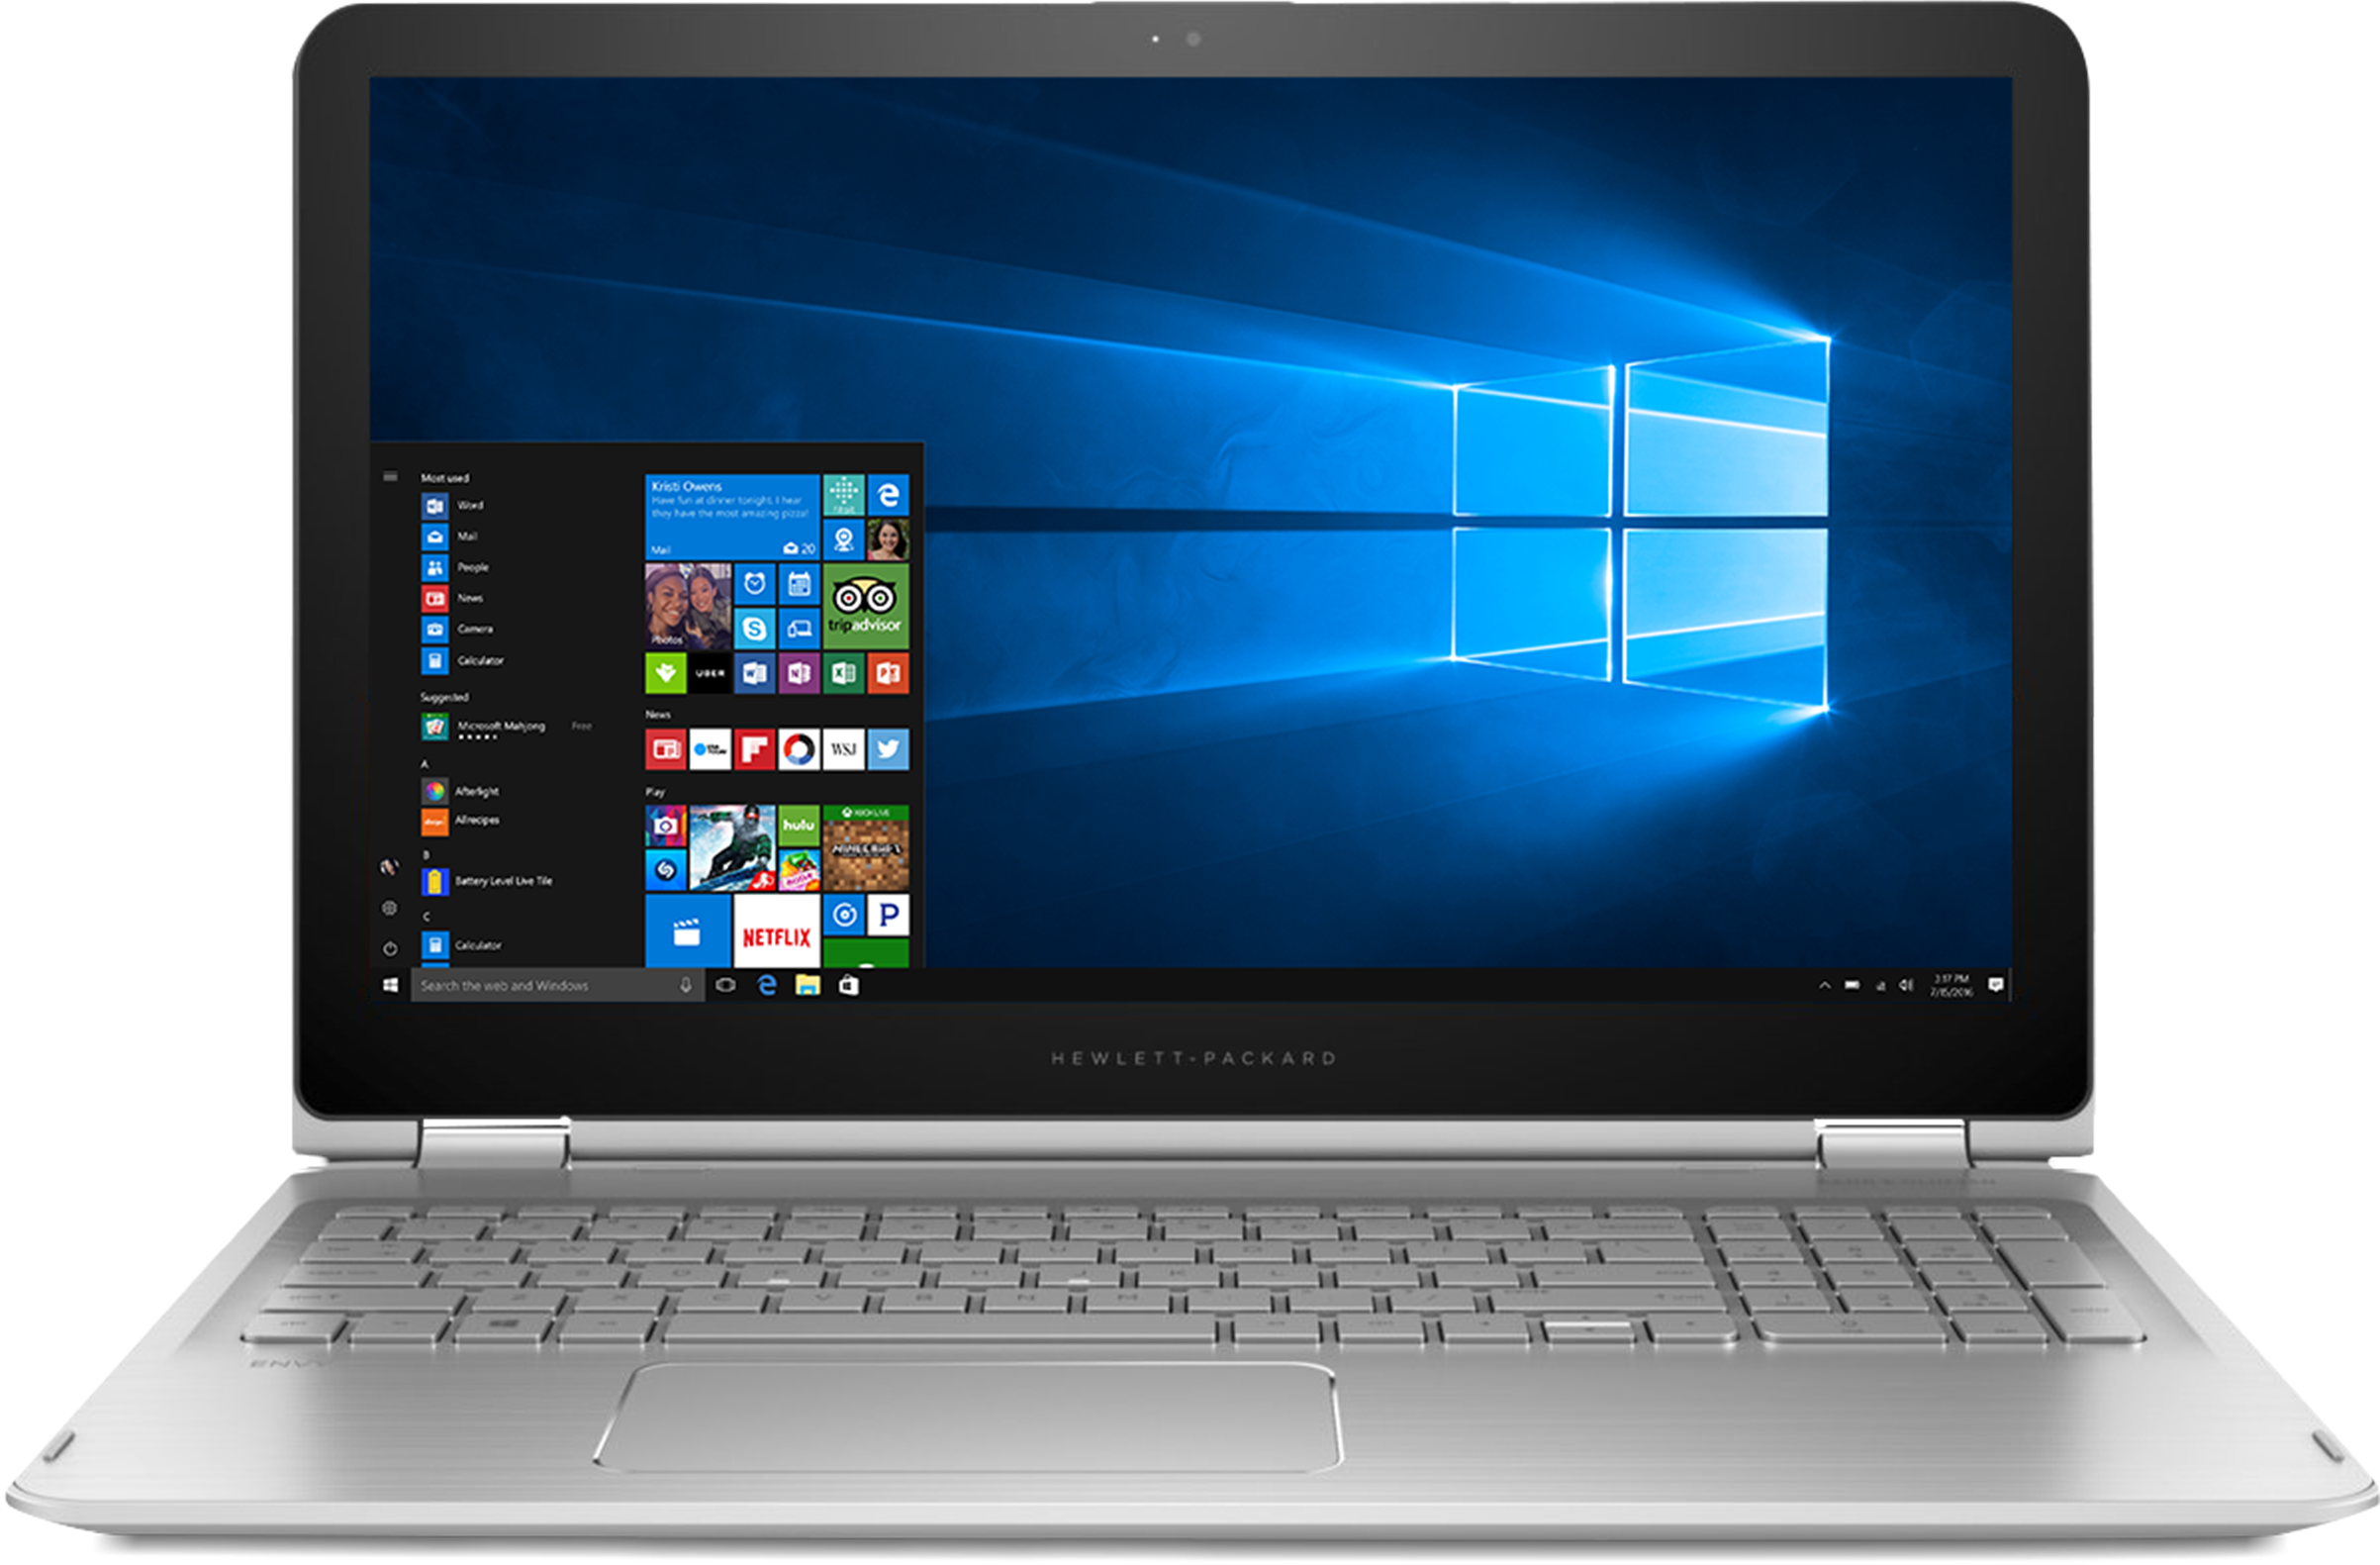 HP ENVY x360 Convertible 15-w291ms 2 in 1 PC